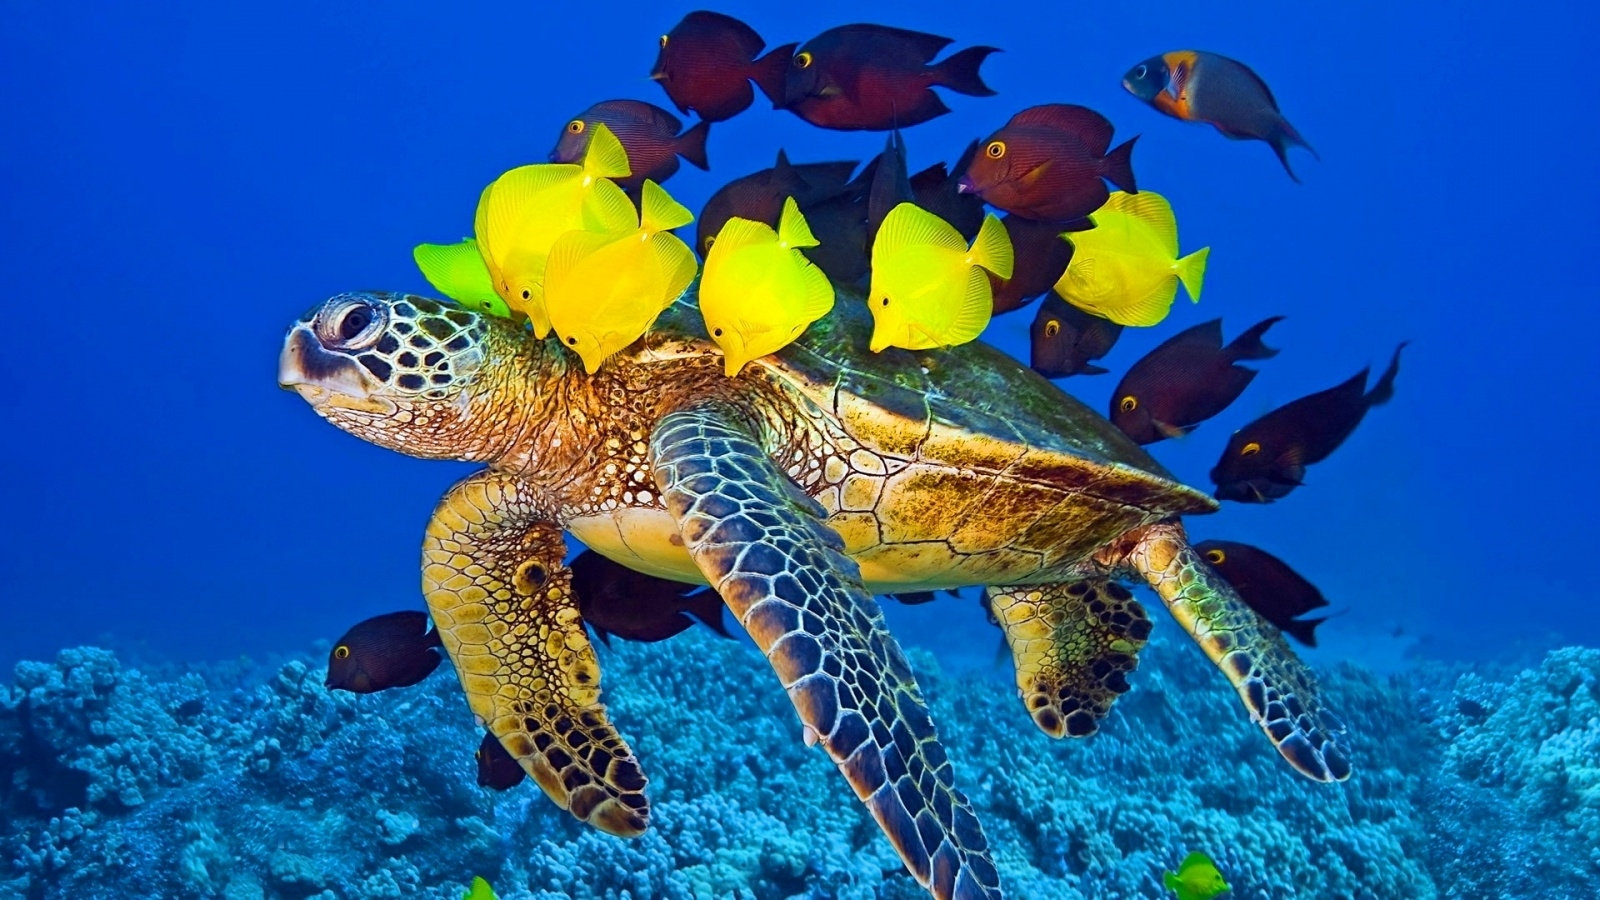 yellow fish and turtle wallpaper for iphone wallpaper | wallpaperlepi